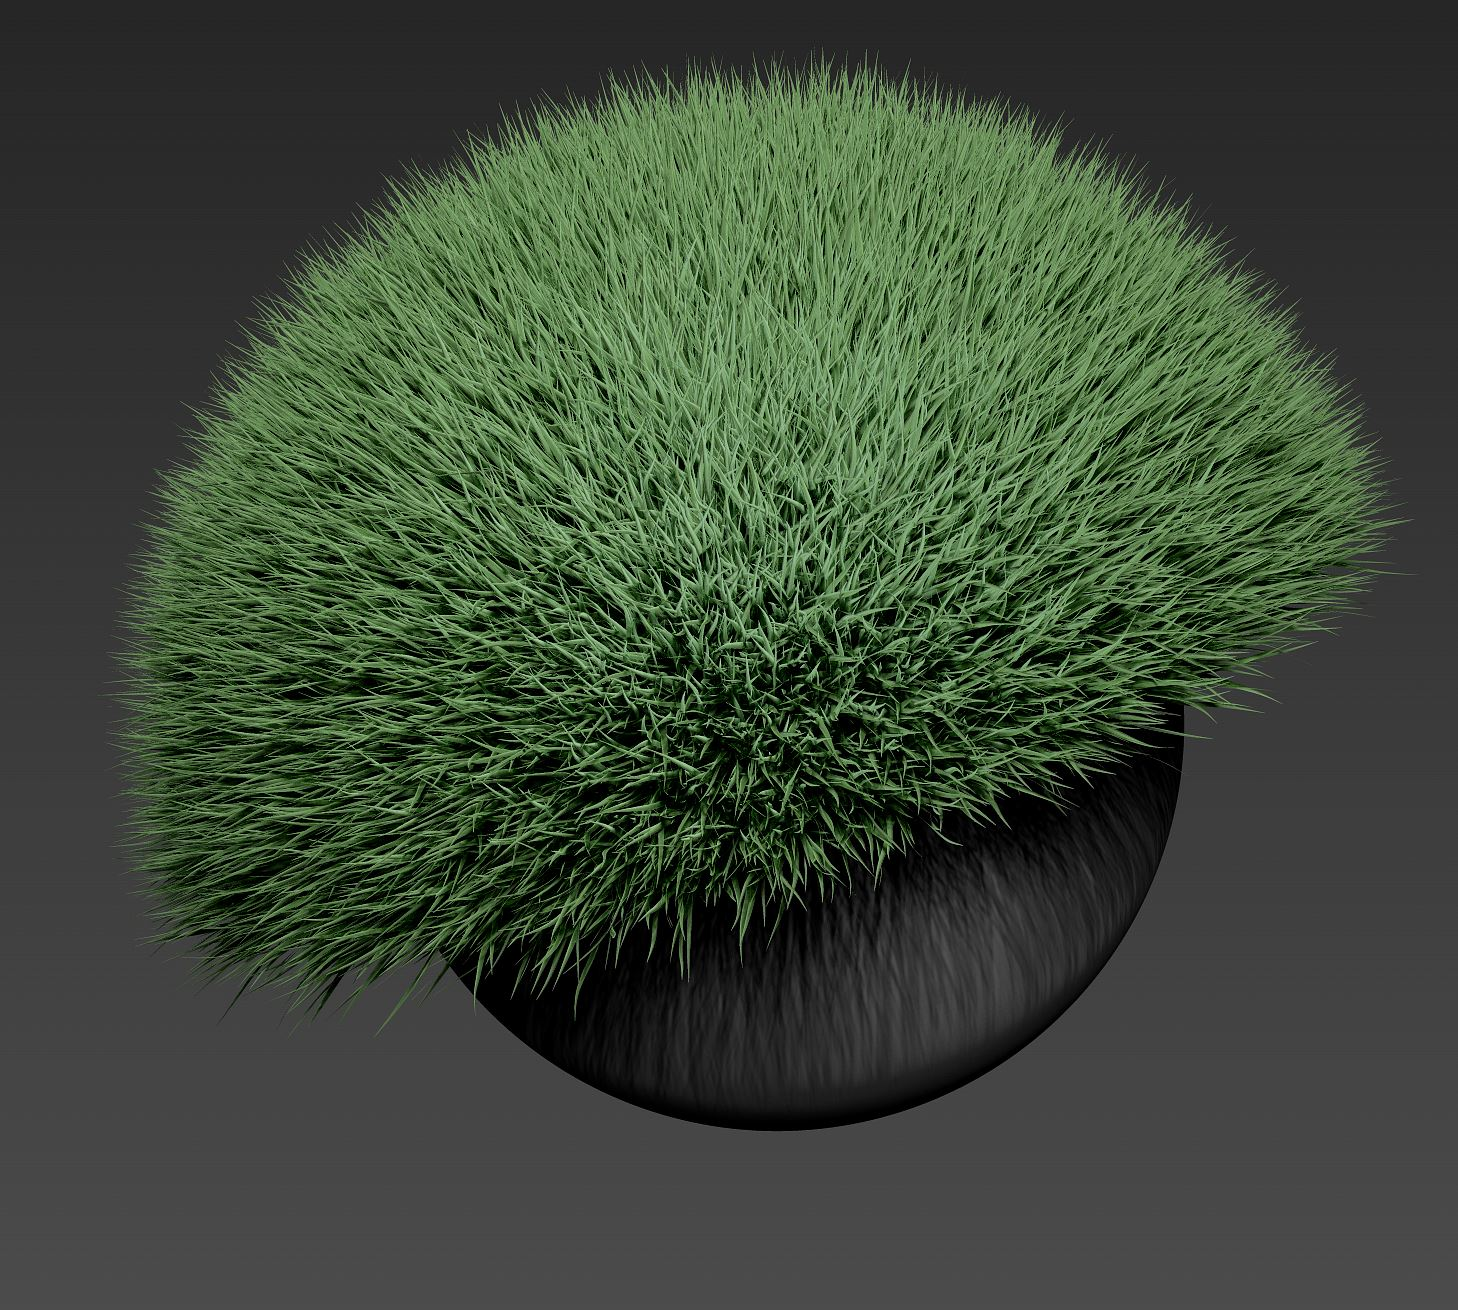 After a few seconds of tweaking max fibers and coverage...  We have grass. How cool is that?